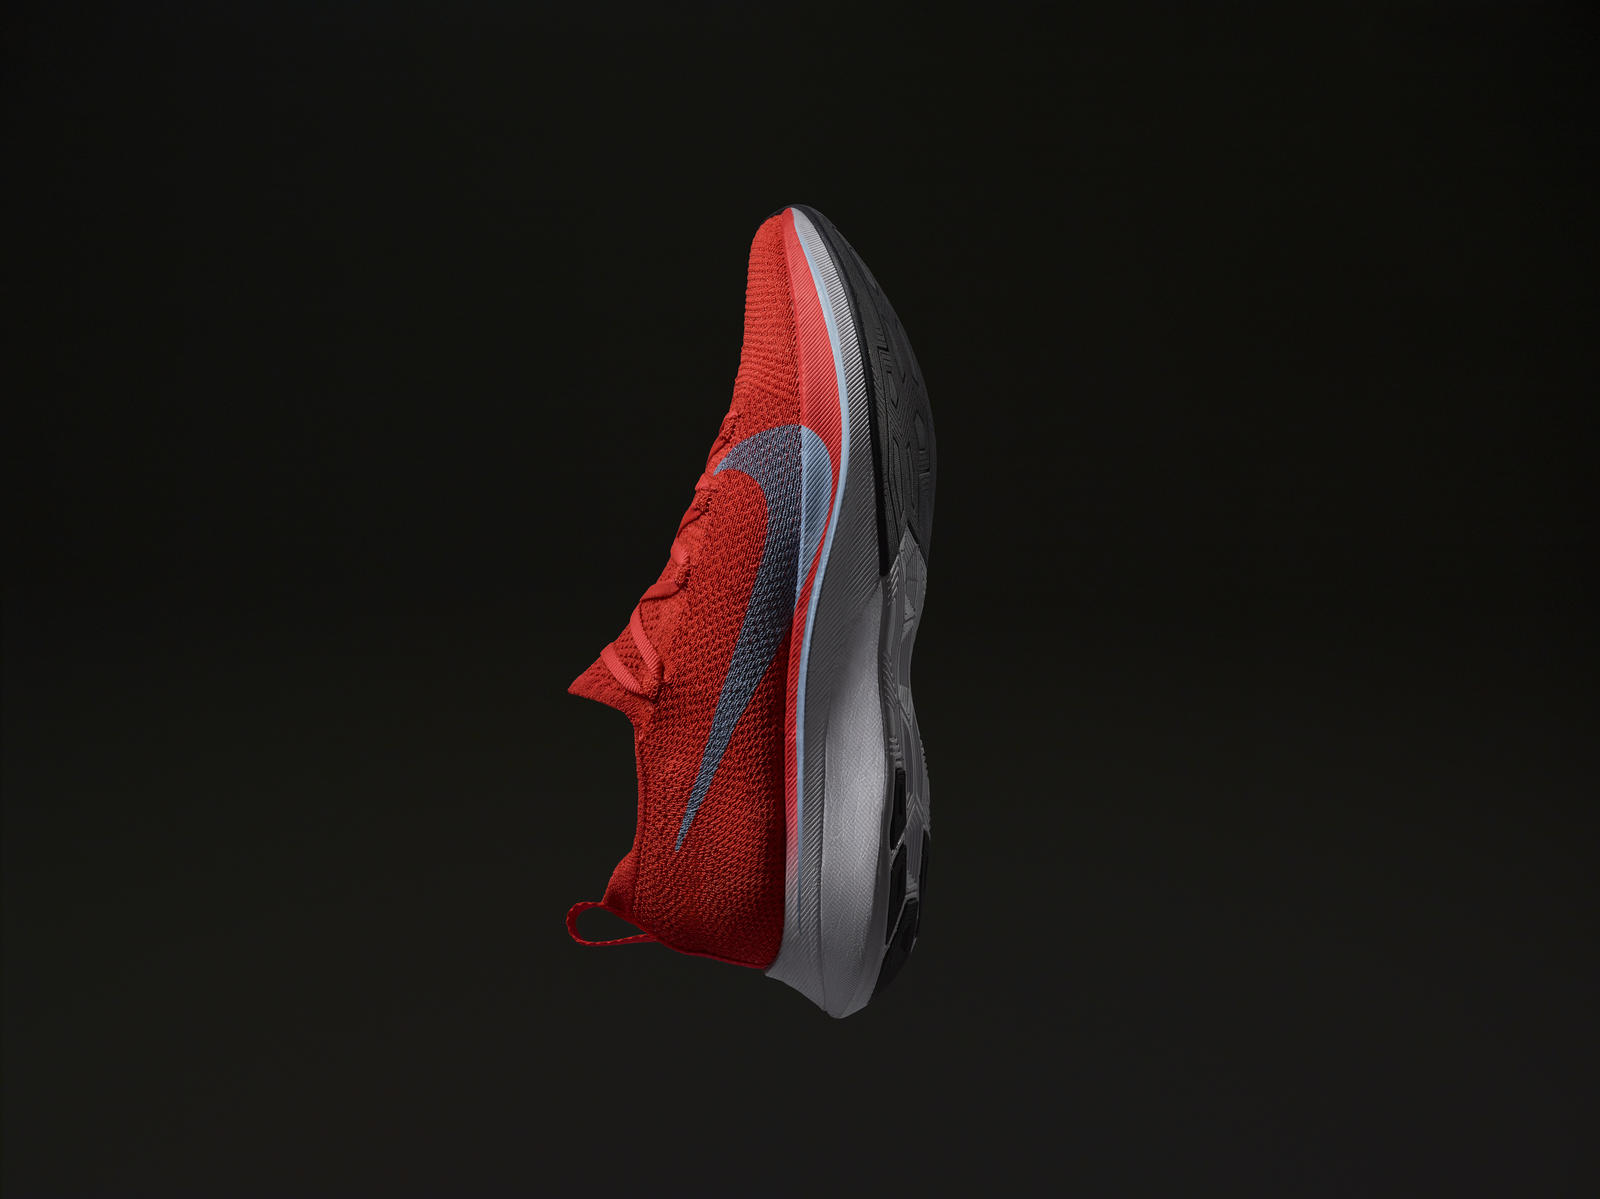 b5eb0a5509f35 Source  https   news.nike.com news how-to-get-the-nike-zoom-vaporfly-4